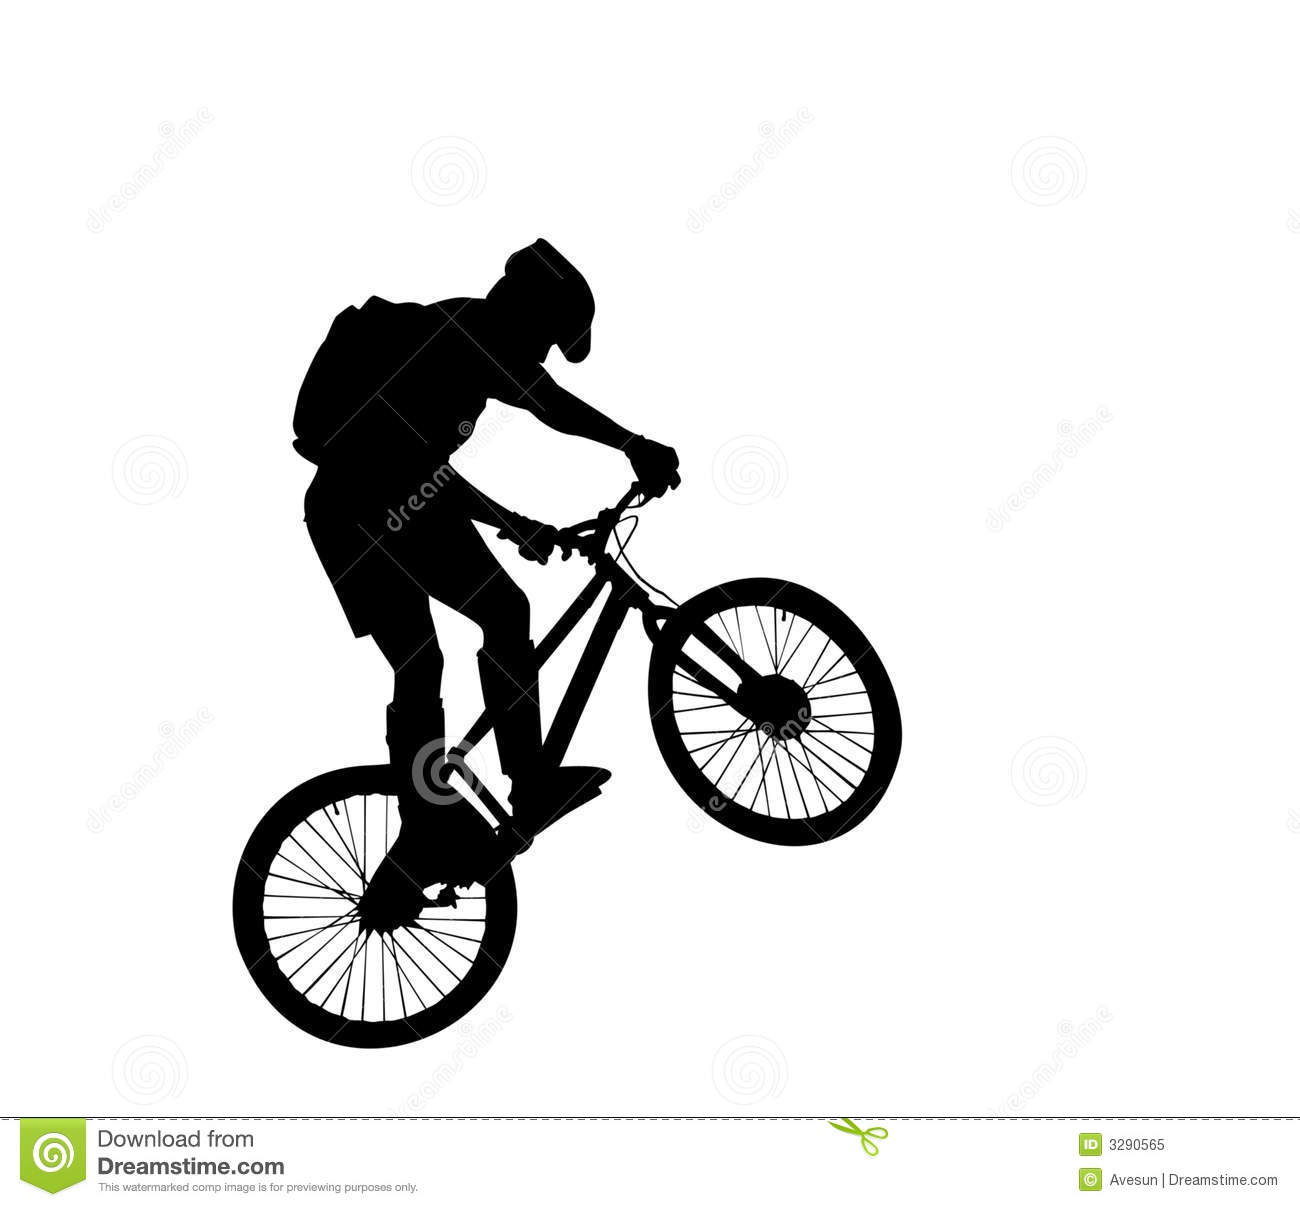 cyclist silhouette royalty free stock photo image 3290565